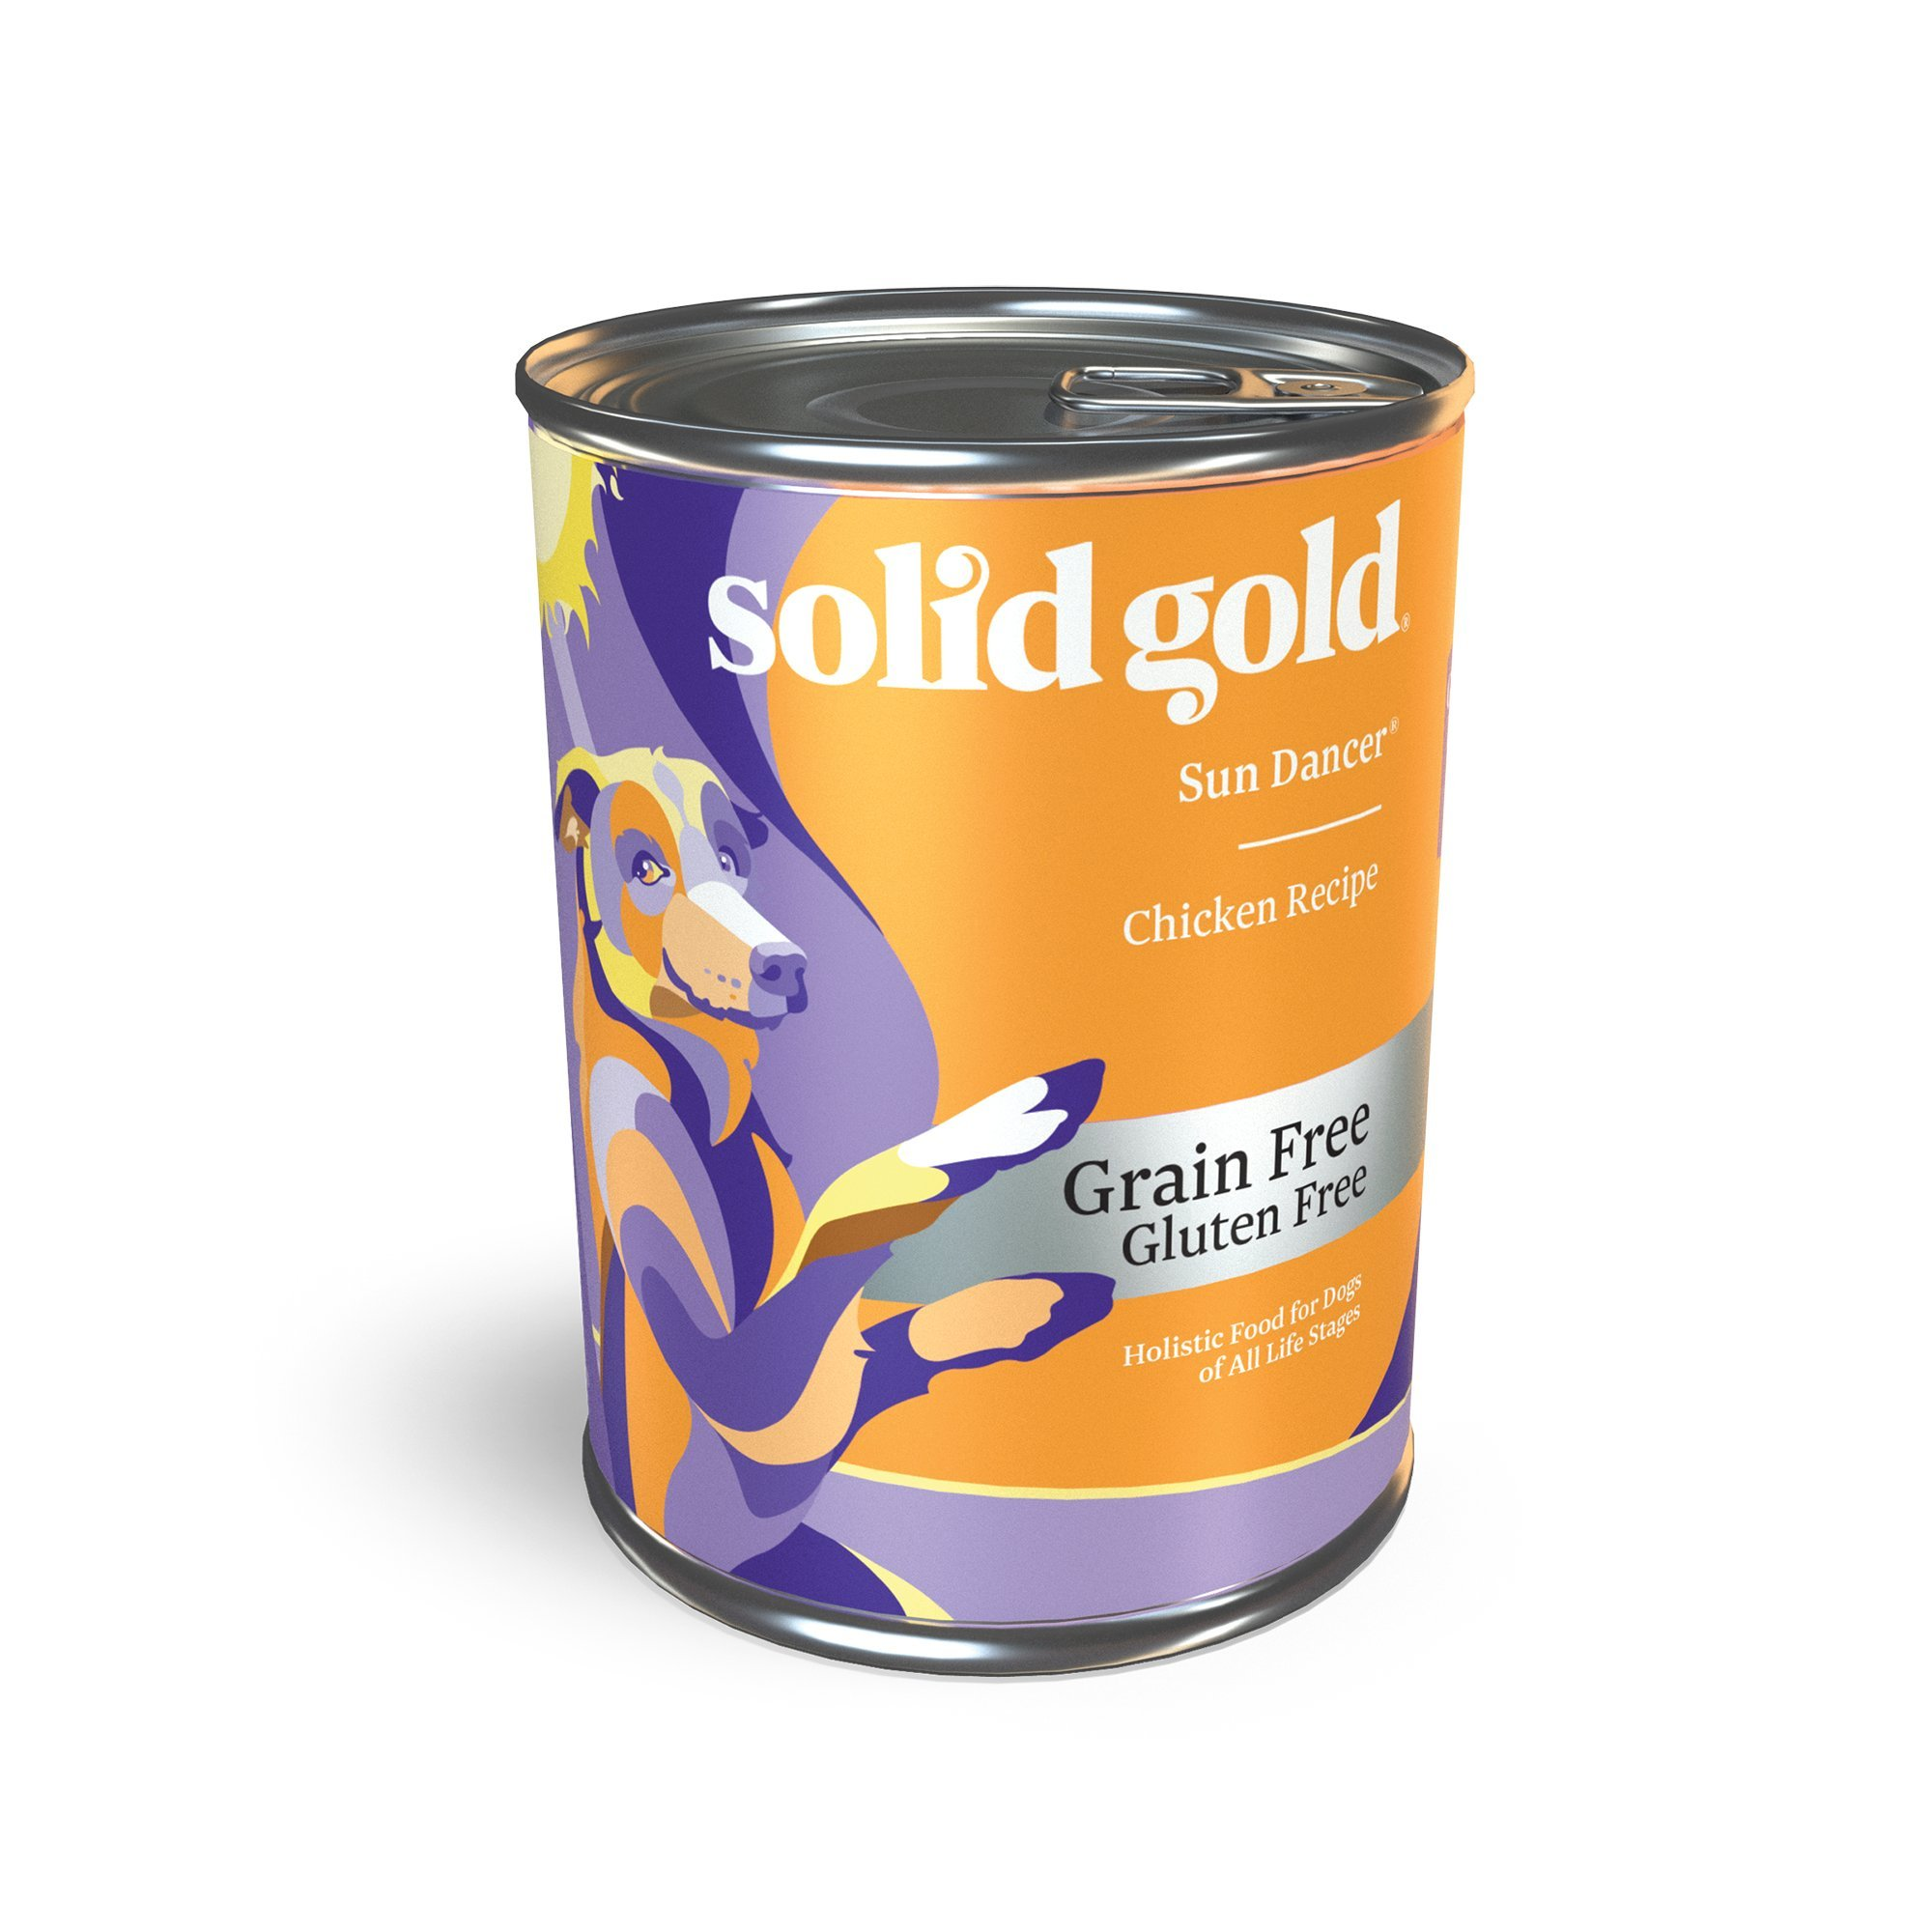 Solid Gold Grain Free Wet Dog Food; Sun Dancer High Protein with Real Chicken & Tapioca, 12ct/13.2oz can